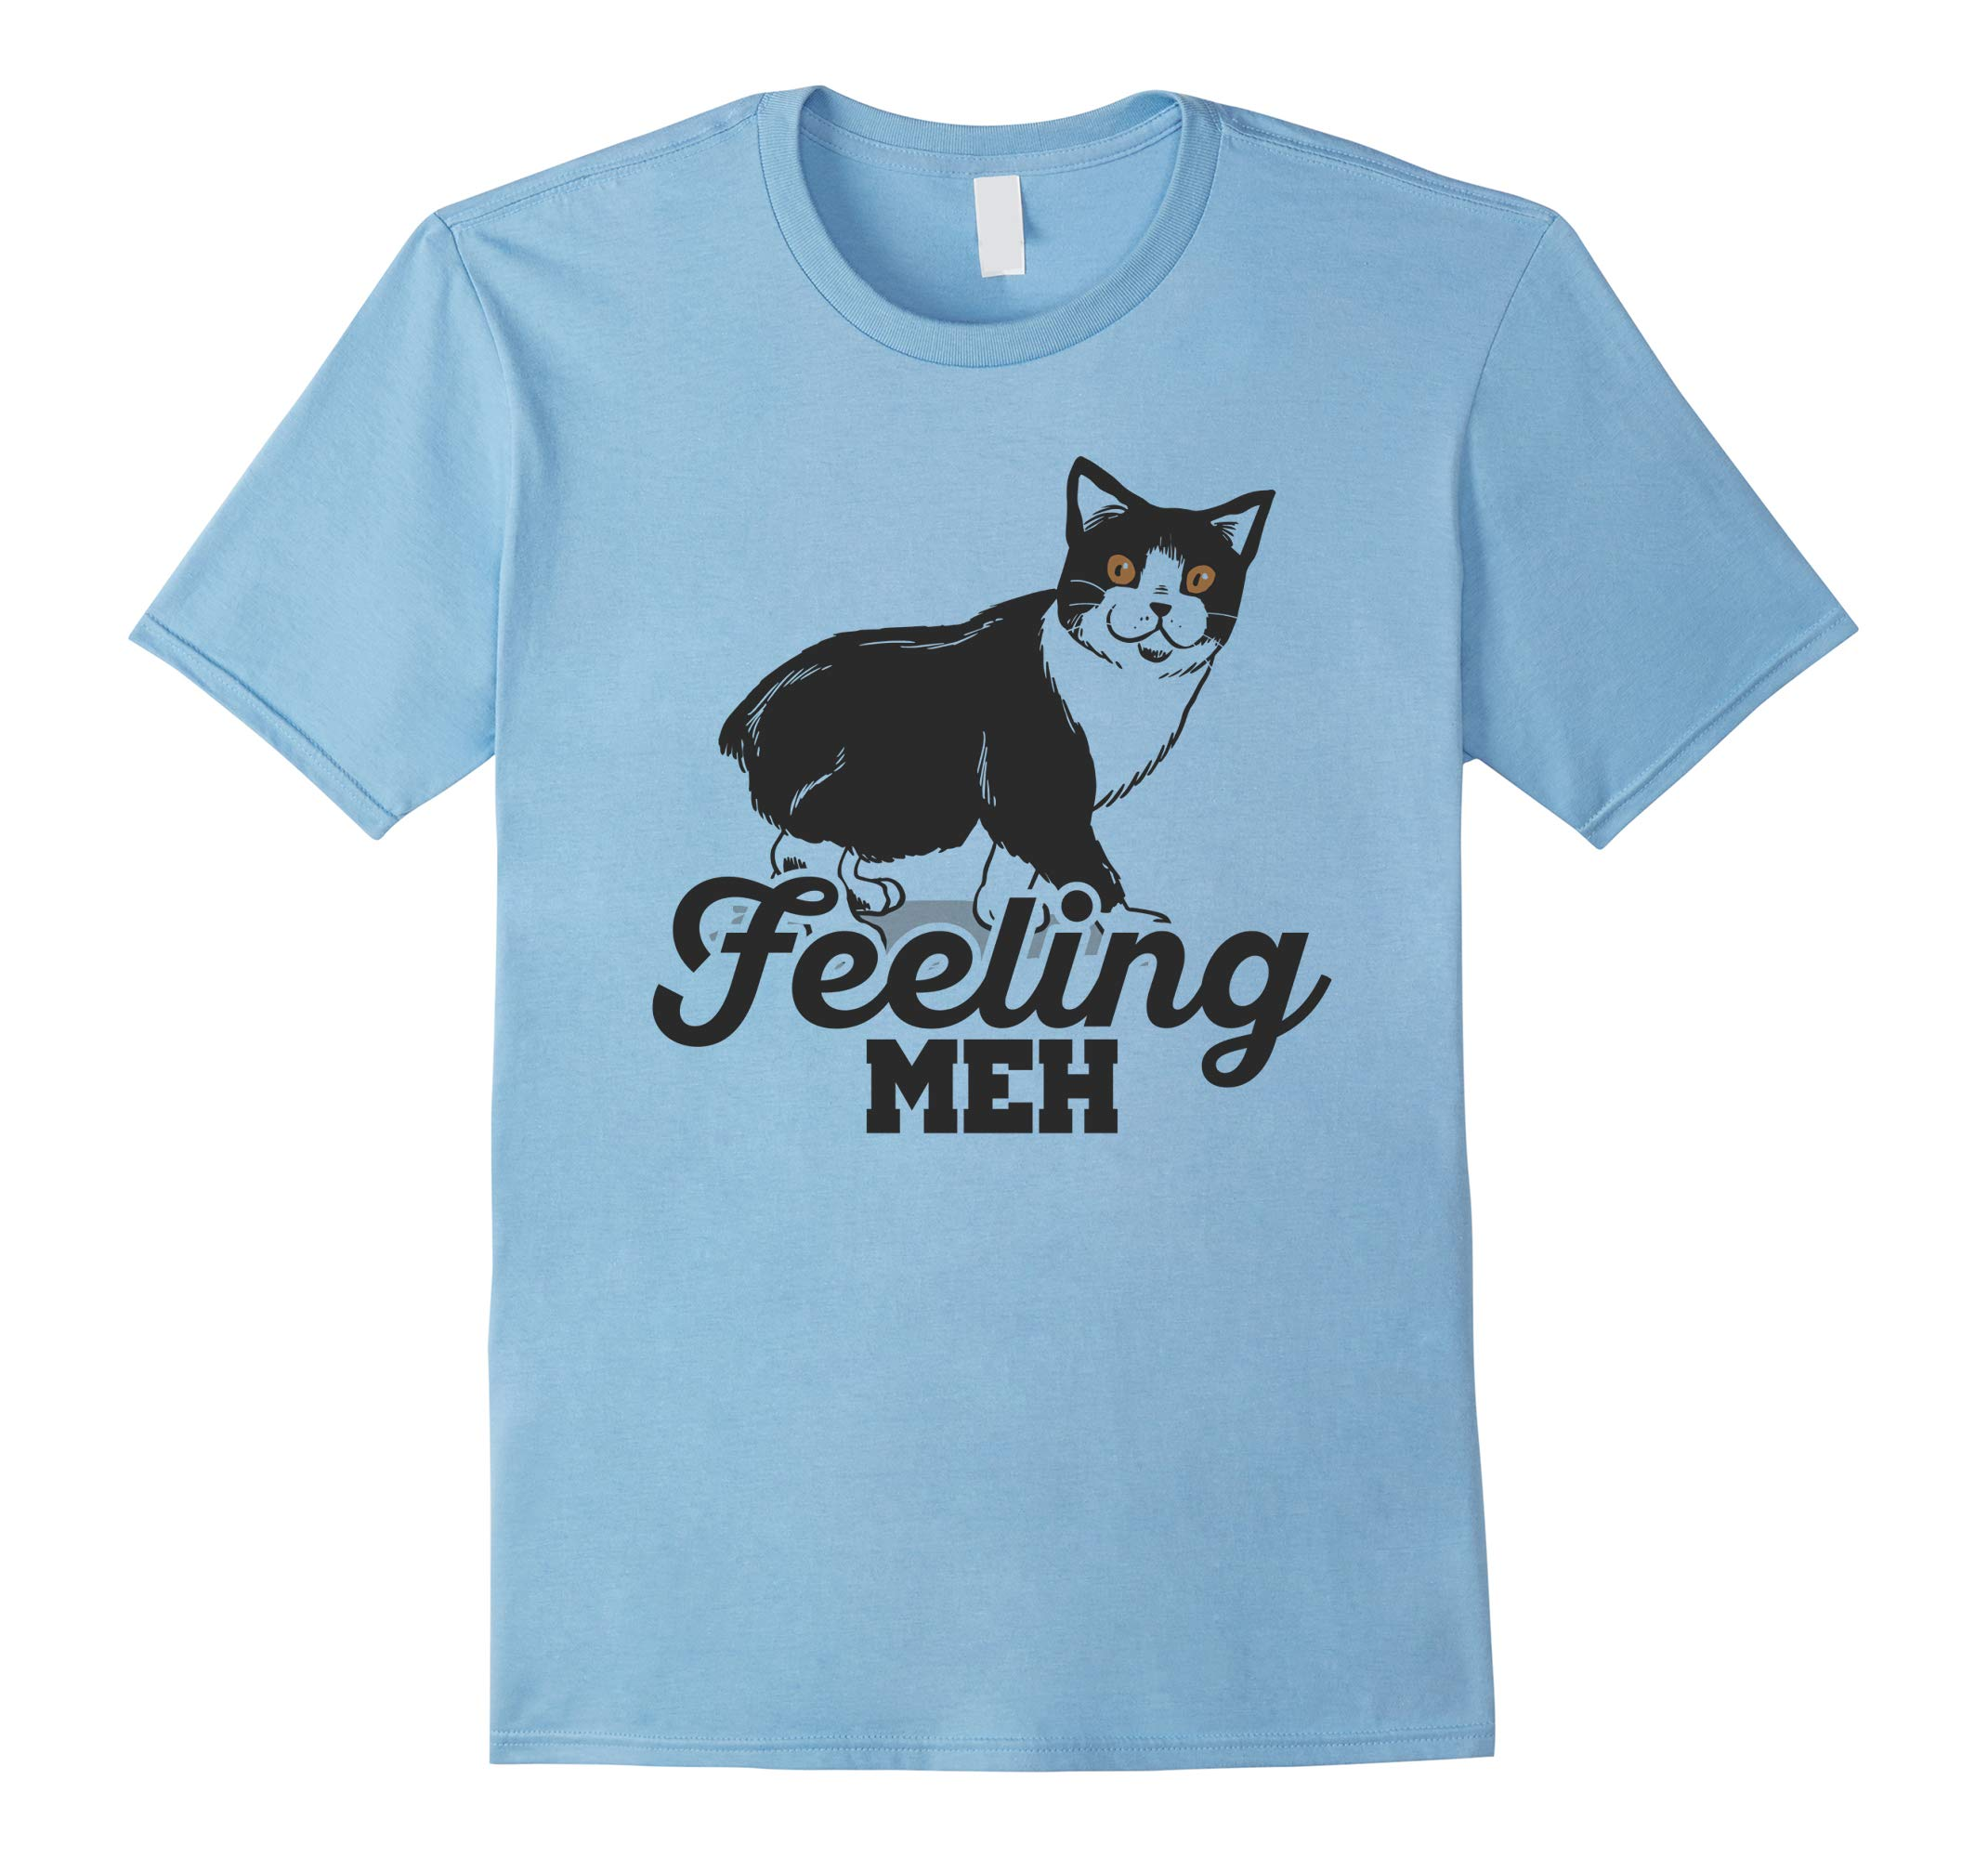 Feeling MEH Cute Cat T-Shirt-RT